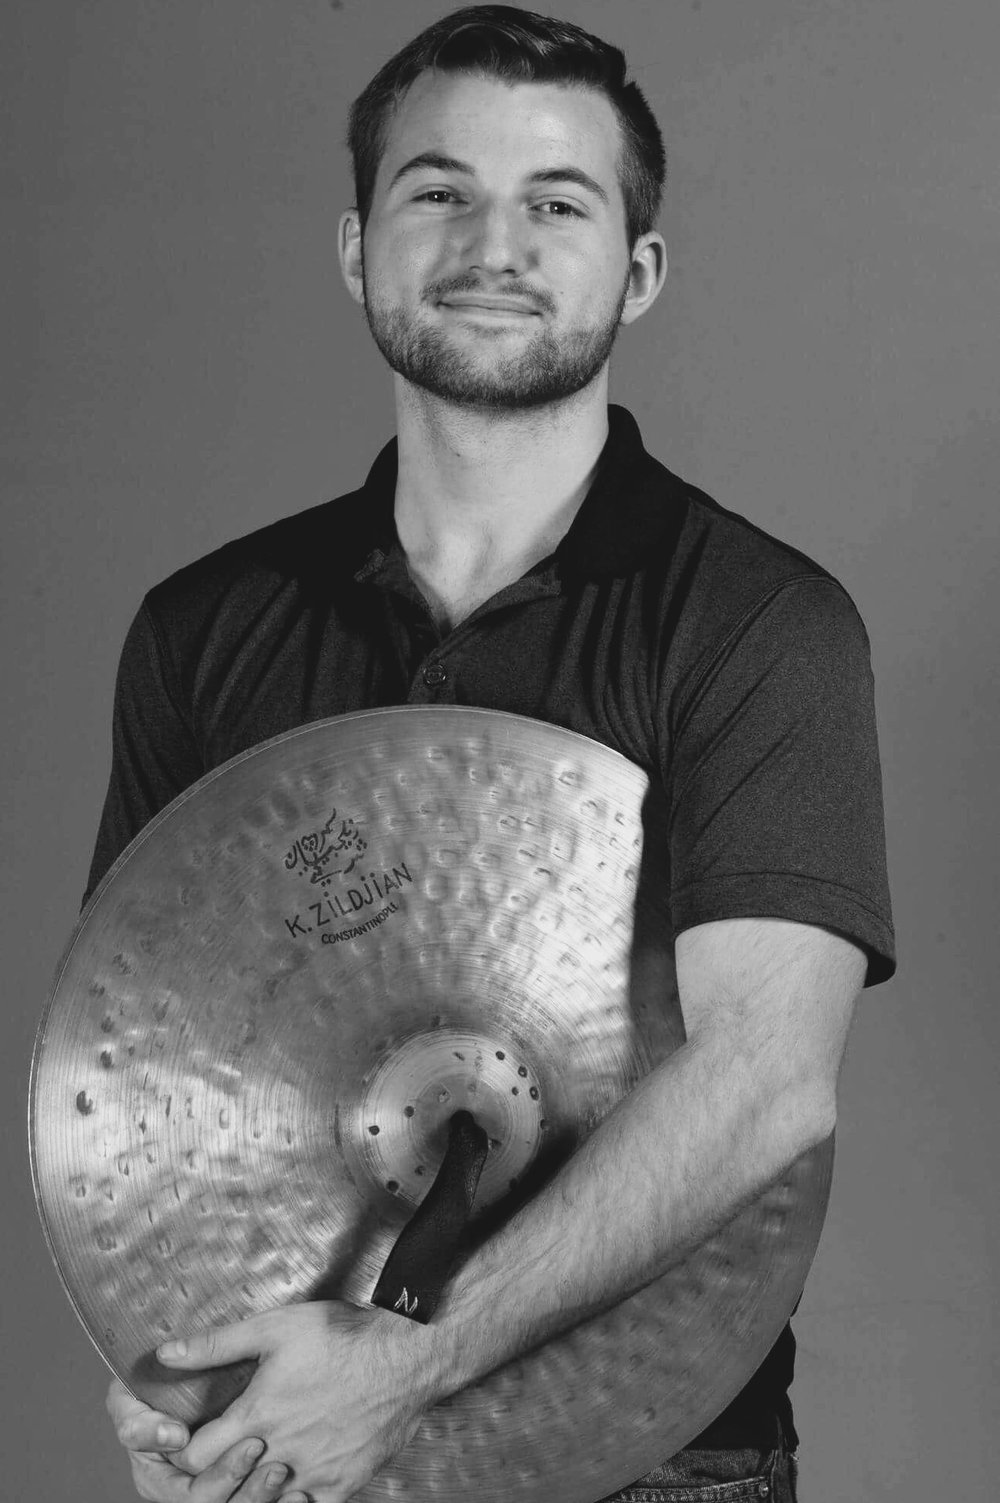 Addison Pellegrino - Addison Pellegrino joining us as our front ensemble coordinator. Born in Fort Worth Texas, Addison Pellegrino is a true Texas native that enjoys all things involving percussion. He began his percussion studies with Allen Joanis, Mickey Burmer, Andrew Klein, and James Christian, but is currently pursuing a Bachelor degree in Music Education at Northwestern State University under the direction of Oliver Molina and Kenneth Green. Addison has participated with the Natchitoches-Northwestern Symphony Orchestra, the NSU Percussion ensemble, and is currently center snare for the SON Marching Band as well as the principal percussionist for the NSU Wind Symphony, Jazz Orchestra, and Jazz Combo.  In 2014 he became a member of the Oregon Crusaders Drum and Bugle Corps front ensemble, and in 2016, was a member of the Louisiana Stars Drum and Bugle Corps snareline. Addison has been a technician and private lesson instructor at various schools throughout Texas and Louisiana including Centennial Highschool (TX), Paris Highschool (TX), Kerr Middle School (TX), Parkway Highschool (LA), and the NSU summer music camps. He is currently a member of the Texas Music Educators Association, Percussive Arts Society, Phi Kappa Phi honor society, and is president of the NSU Percussion Society.